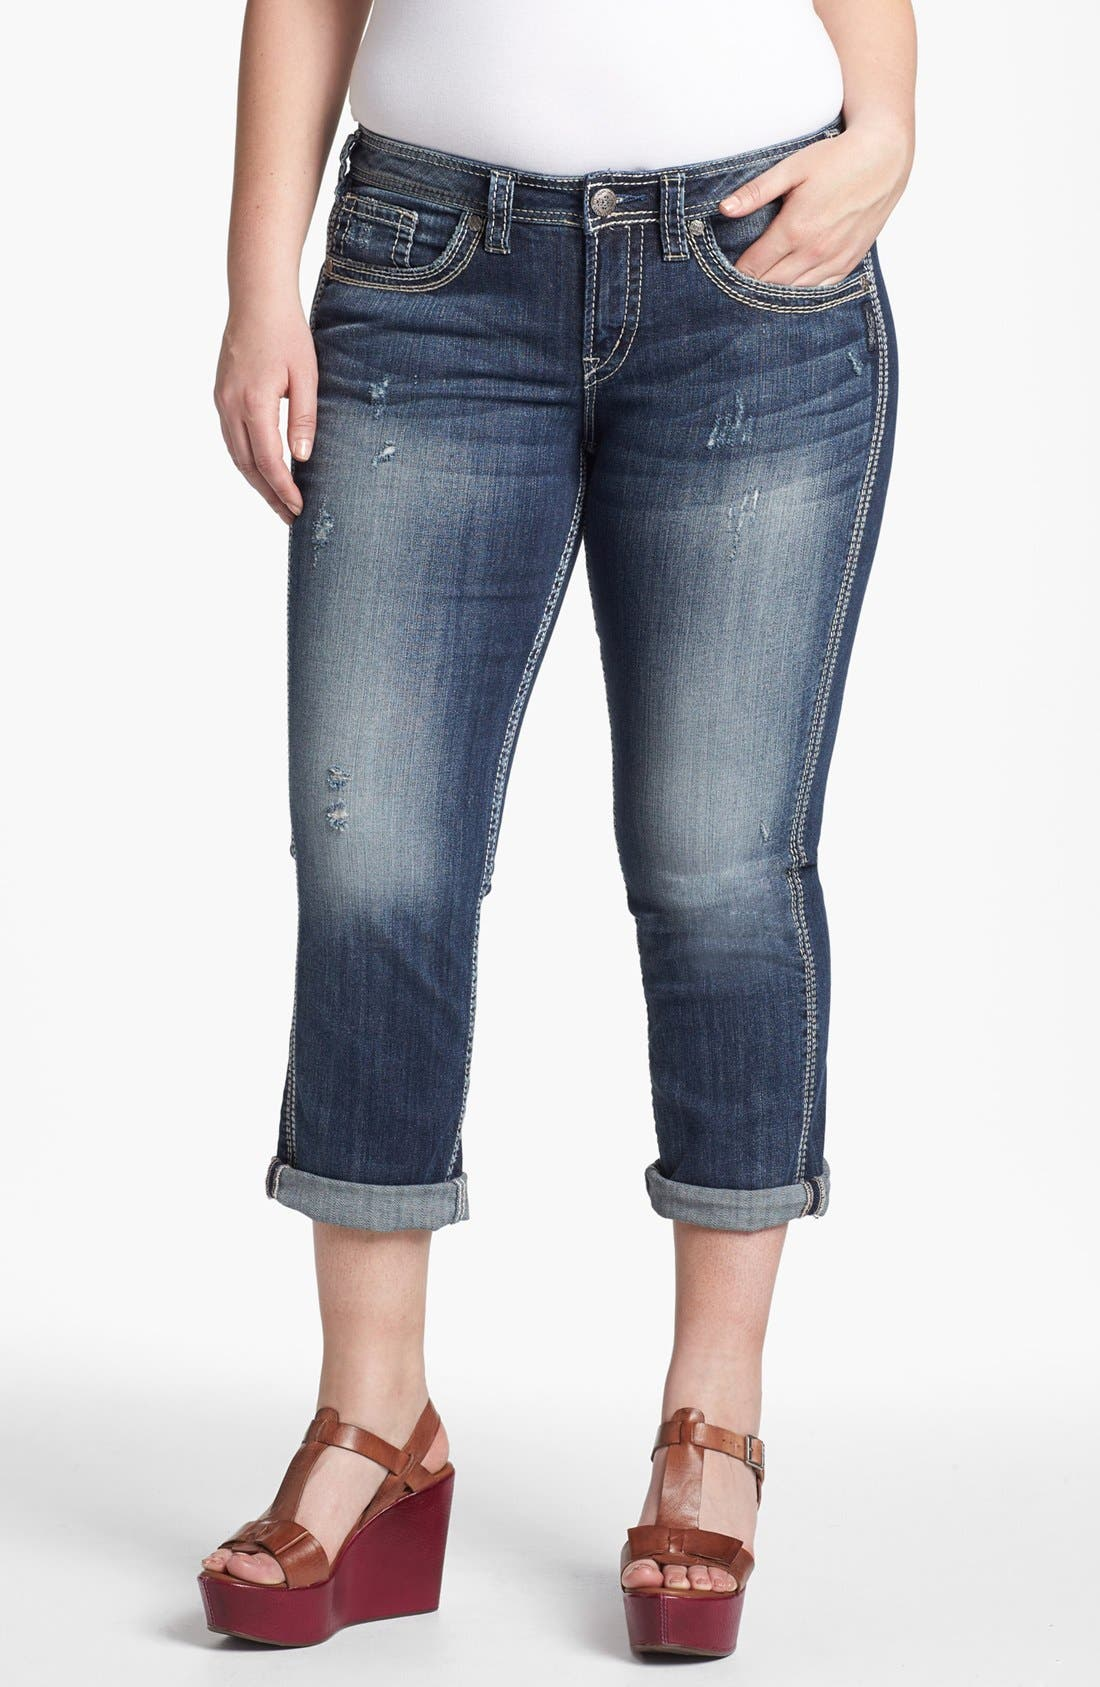 Alternate Image 1 Selected - Silver Jeans Co. 'Twisted' Cuff Capri Jeans (Juniors Plus)